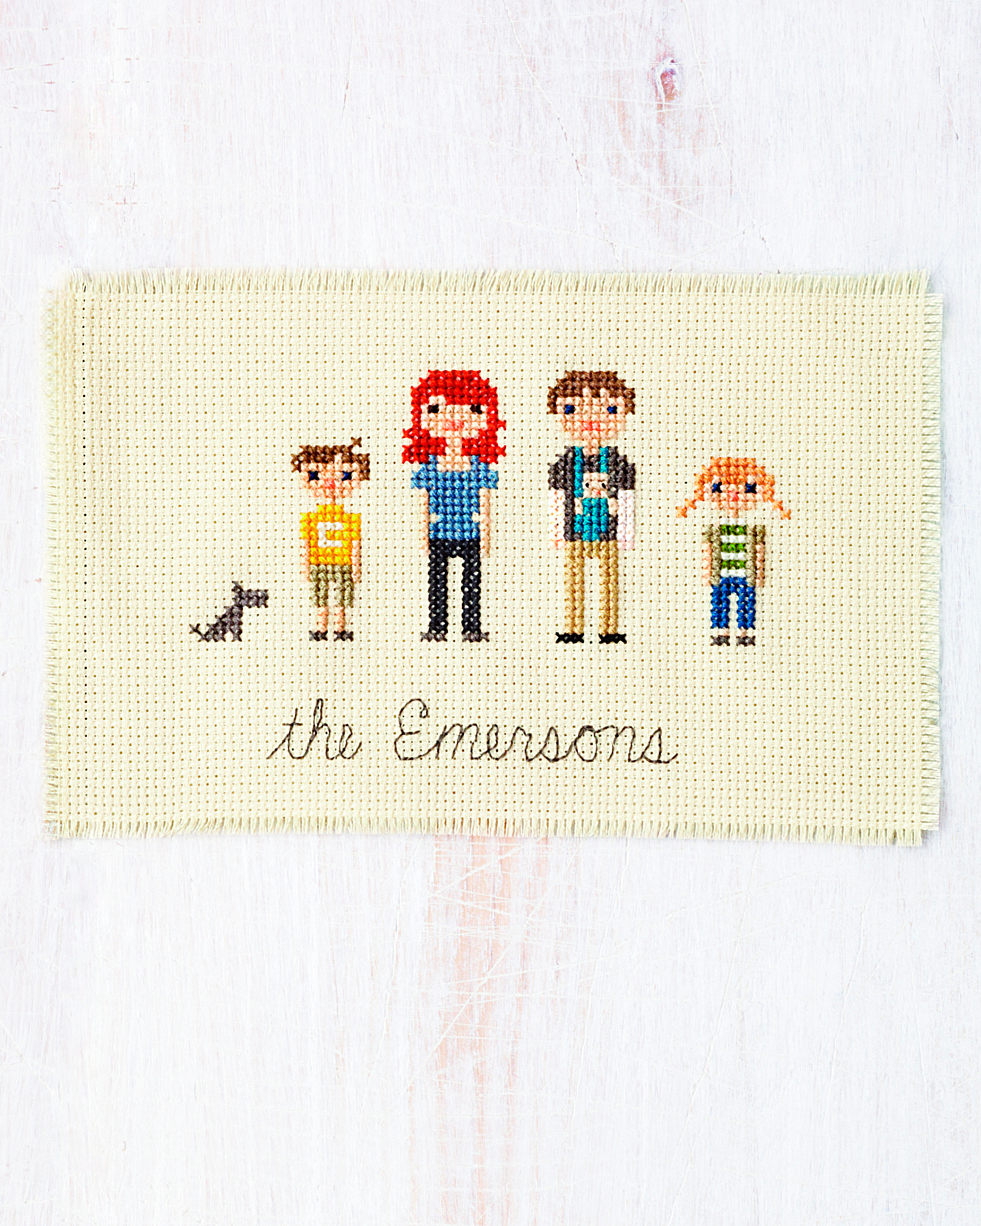 cross-stitch-6-md107751.jpg